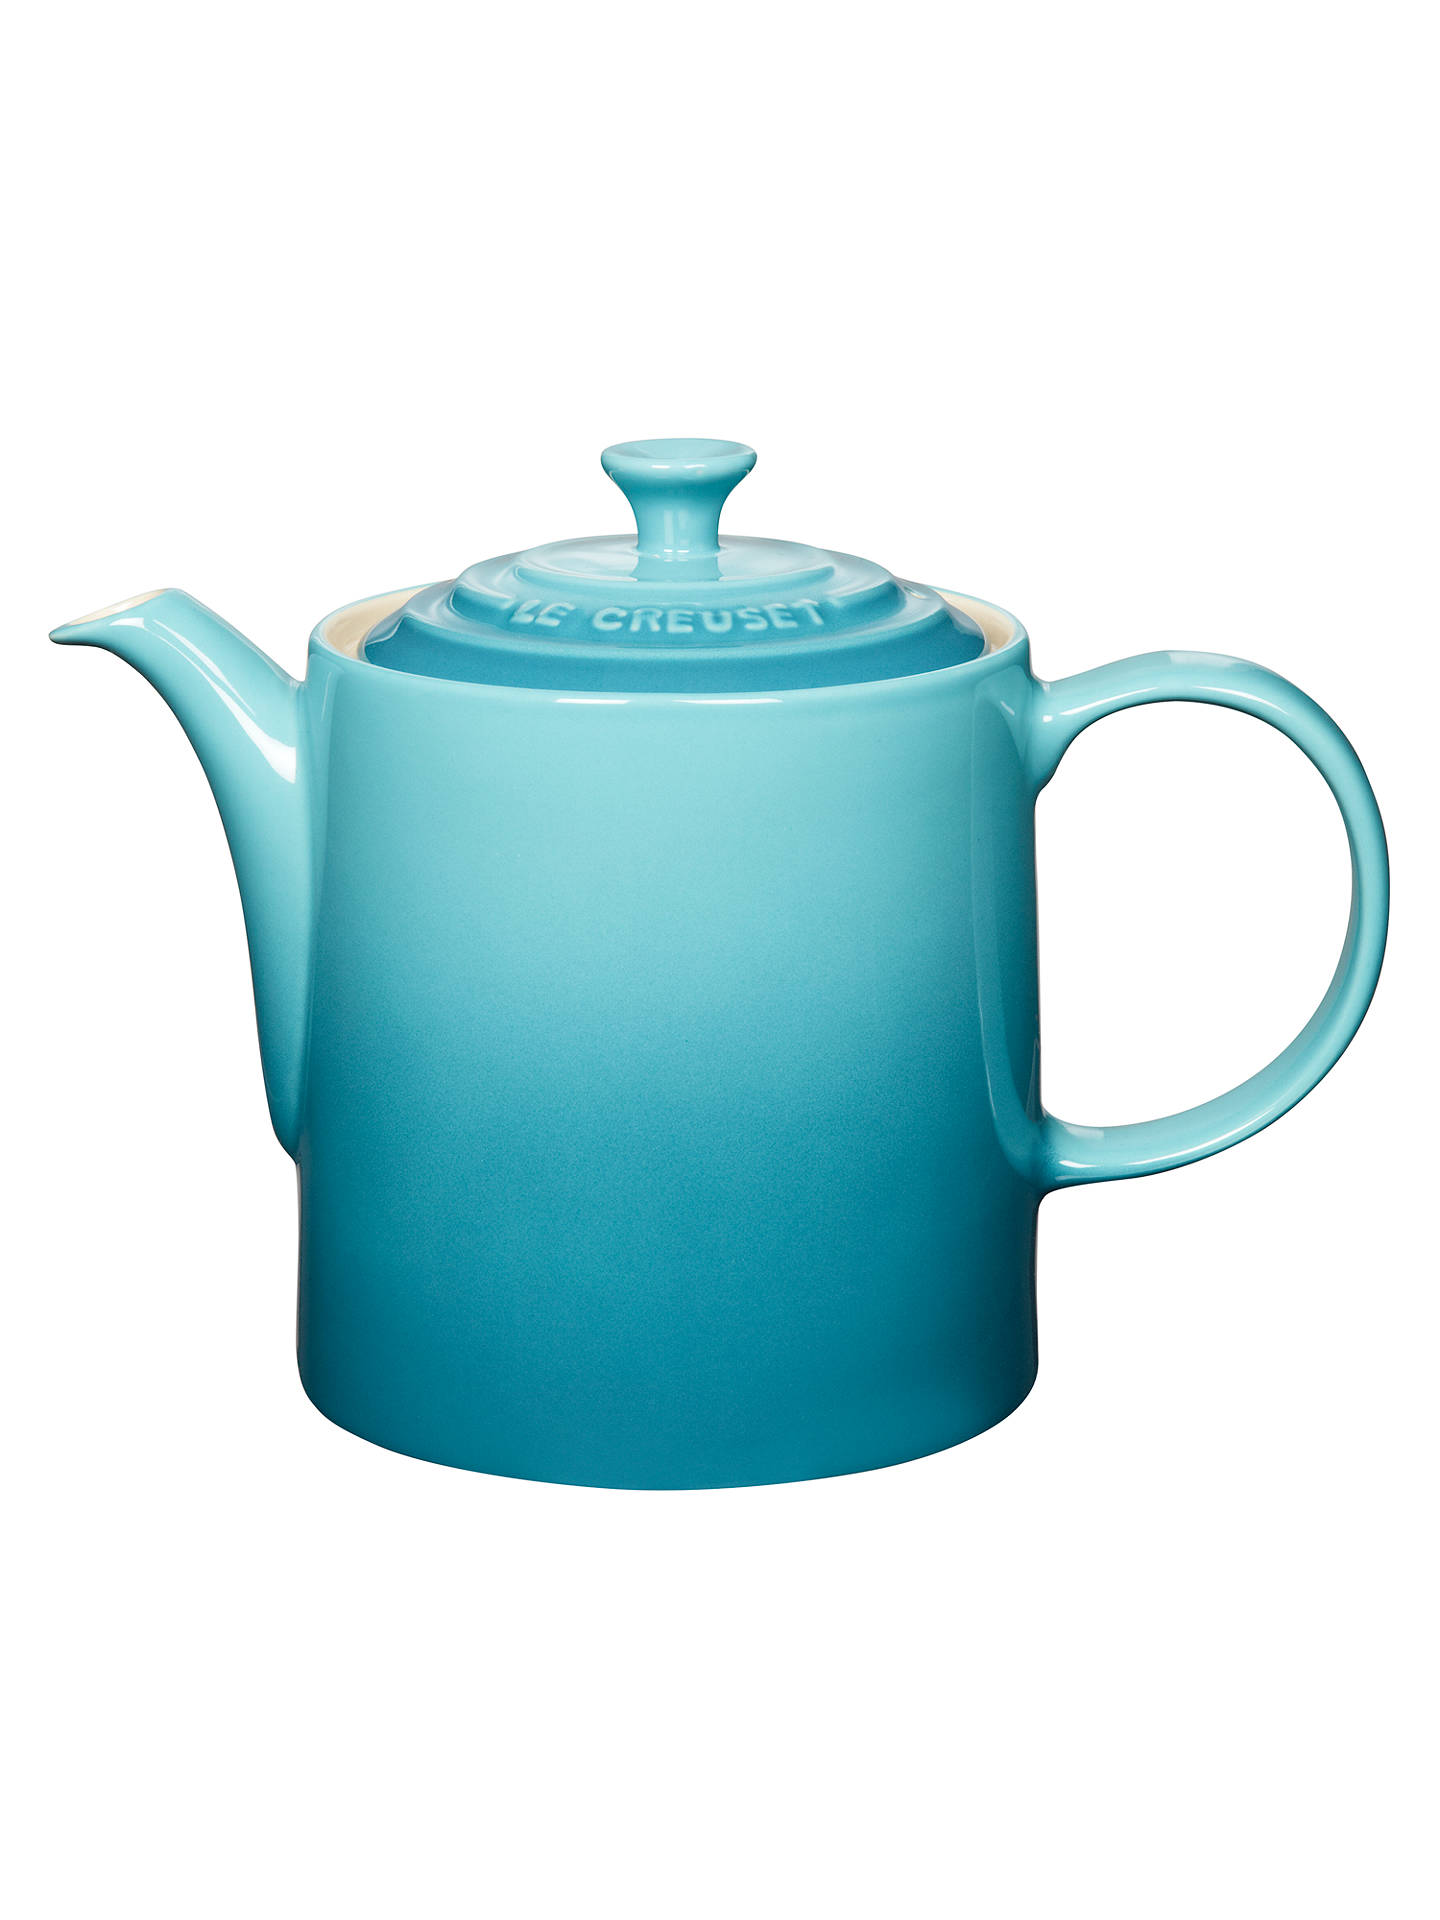 Buy Le Creuset Stoneware Grand Teapot, 1.3L, Teal Online at johnlewis.com